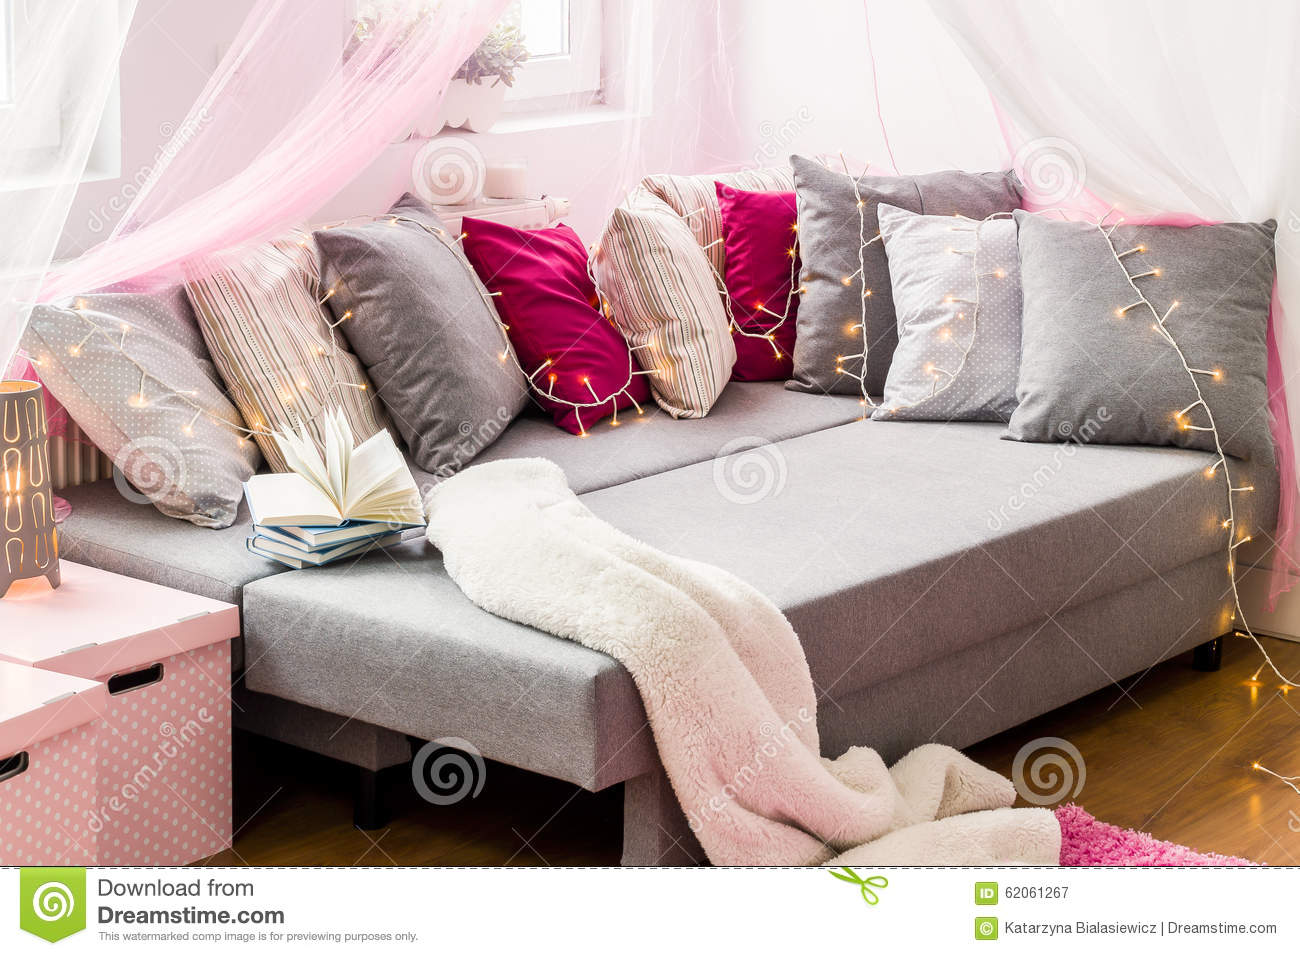 Decorative Cushions For Bed : Large Bed With Decorative Cushions Stock Photo - Image: 62061267